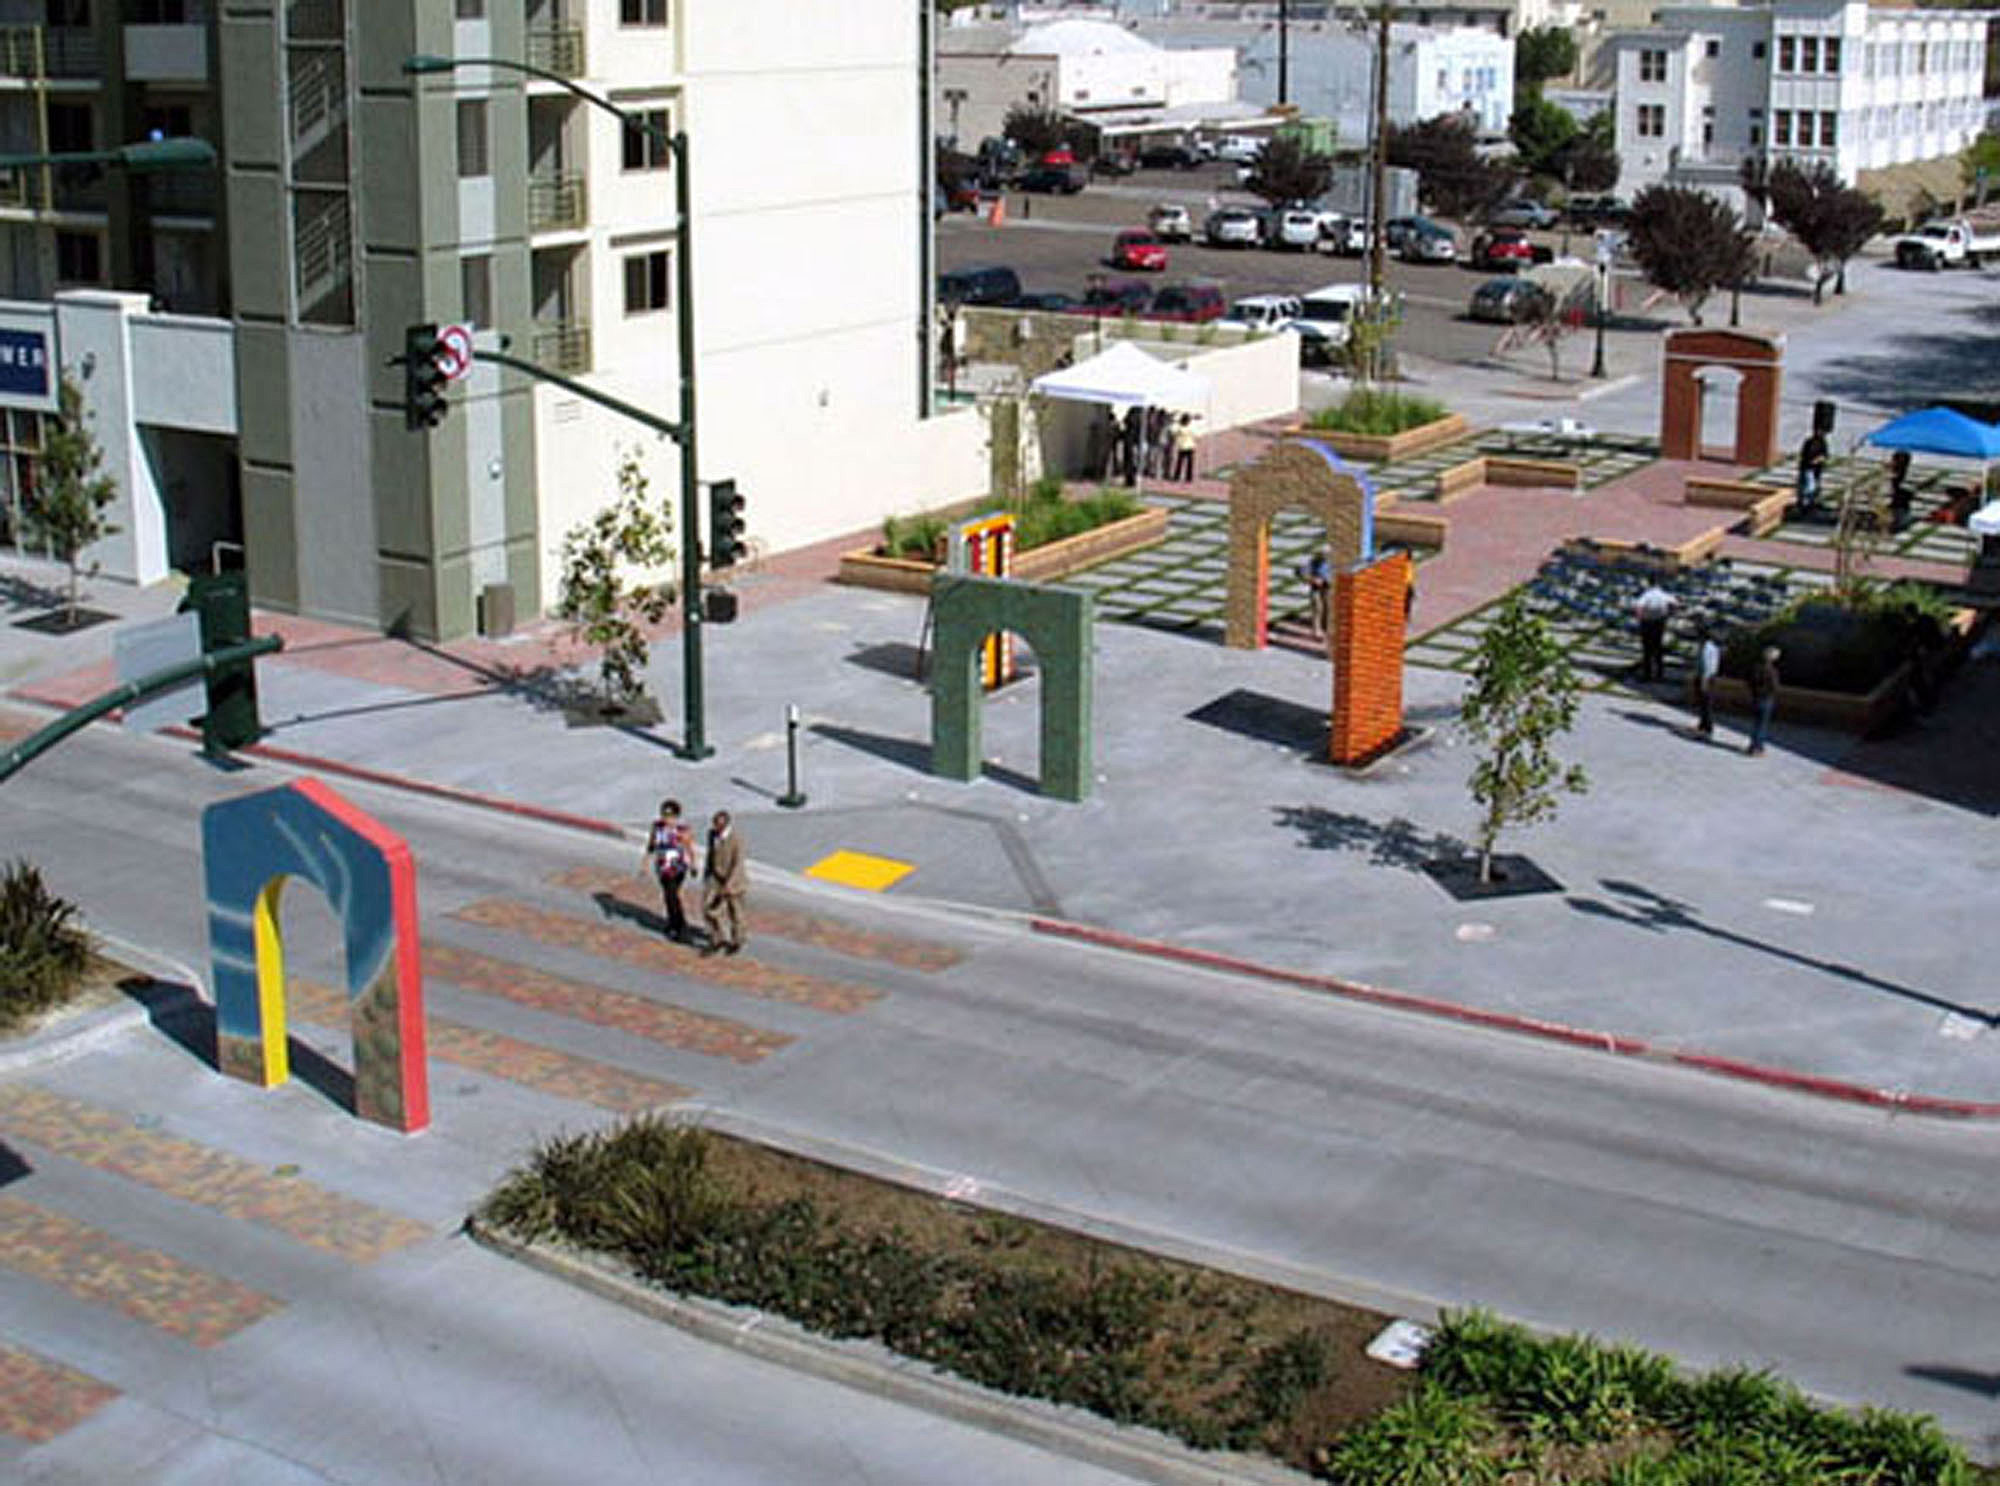 Portals in Time - National City Boulevard Streetscape and Fountain Promenade Project